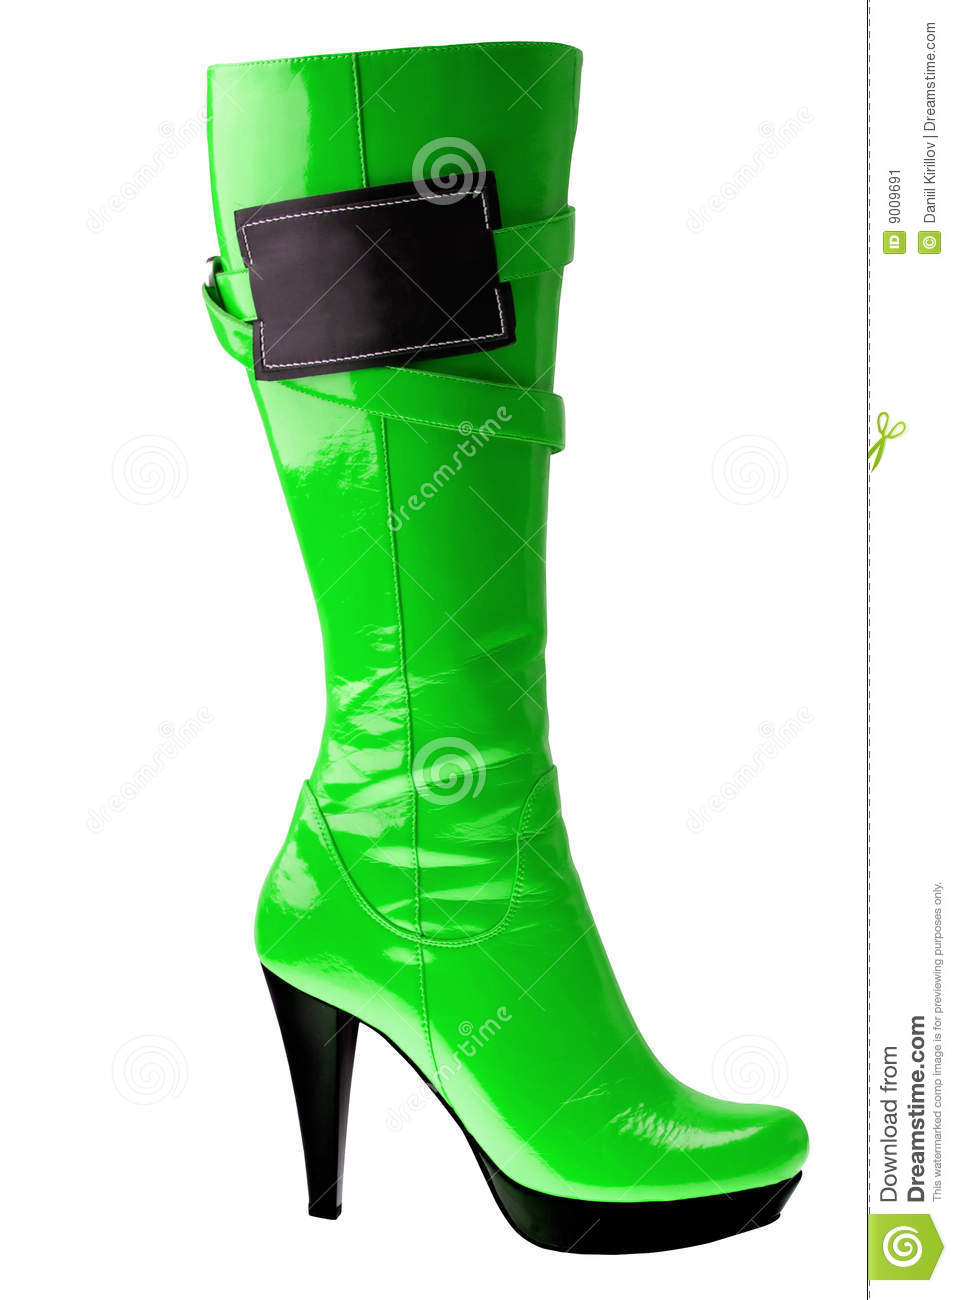 high heel fashion green boot isolated on white stock image